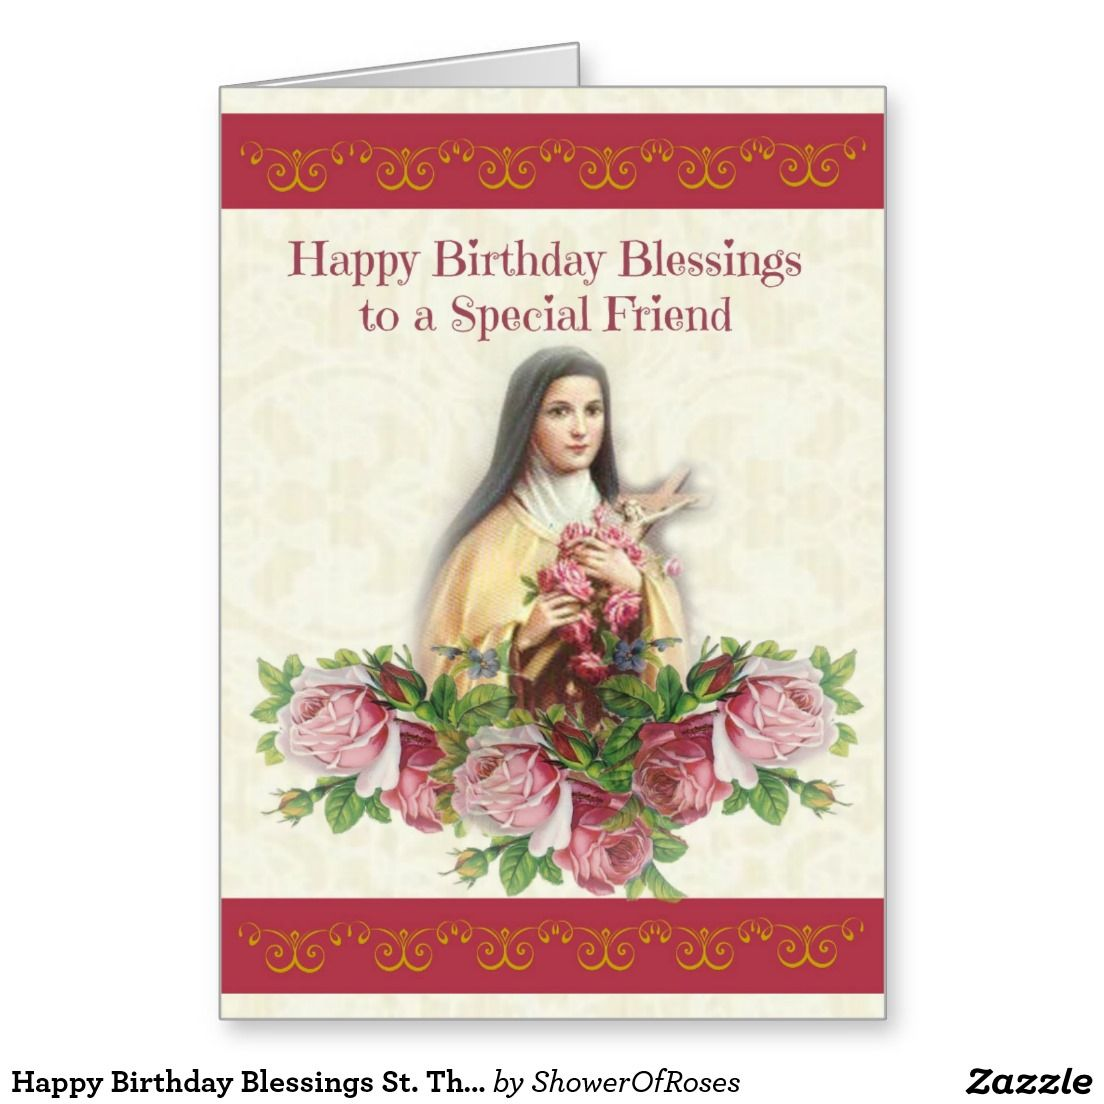 Happy birthday blessings st therese greeting card shower of happy birthday blessings st therese greeting card kristyandbryce Choice Image